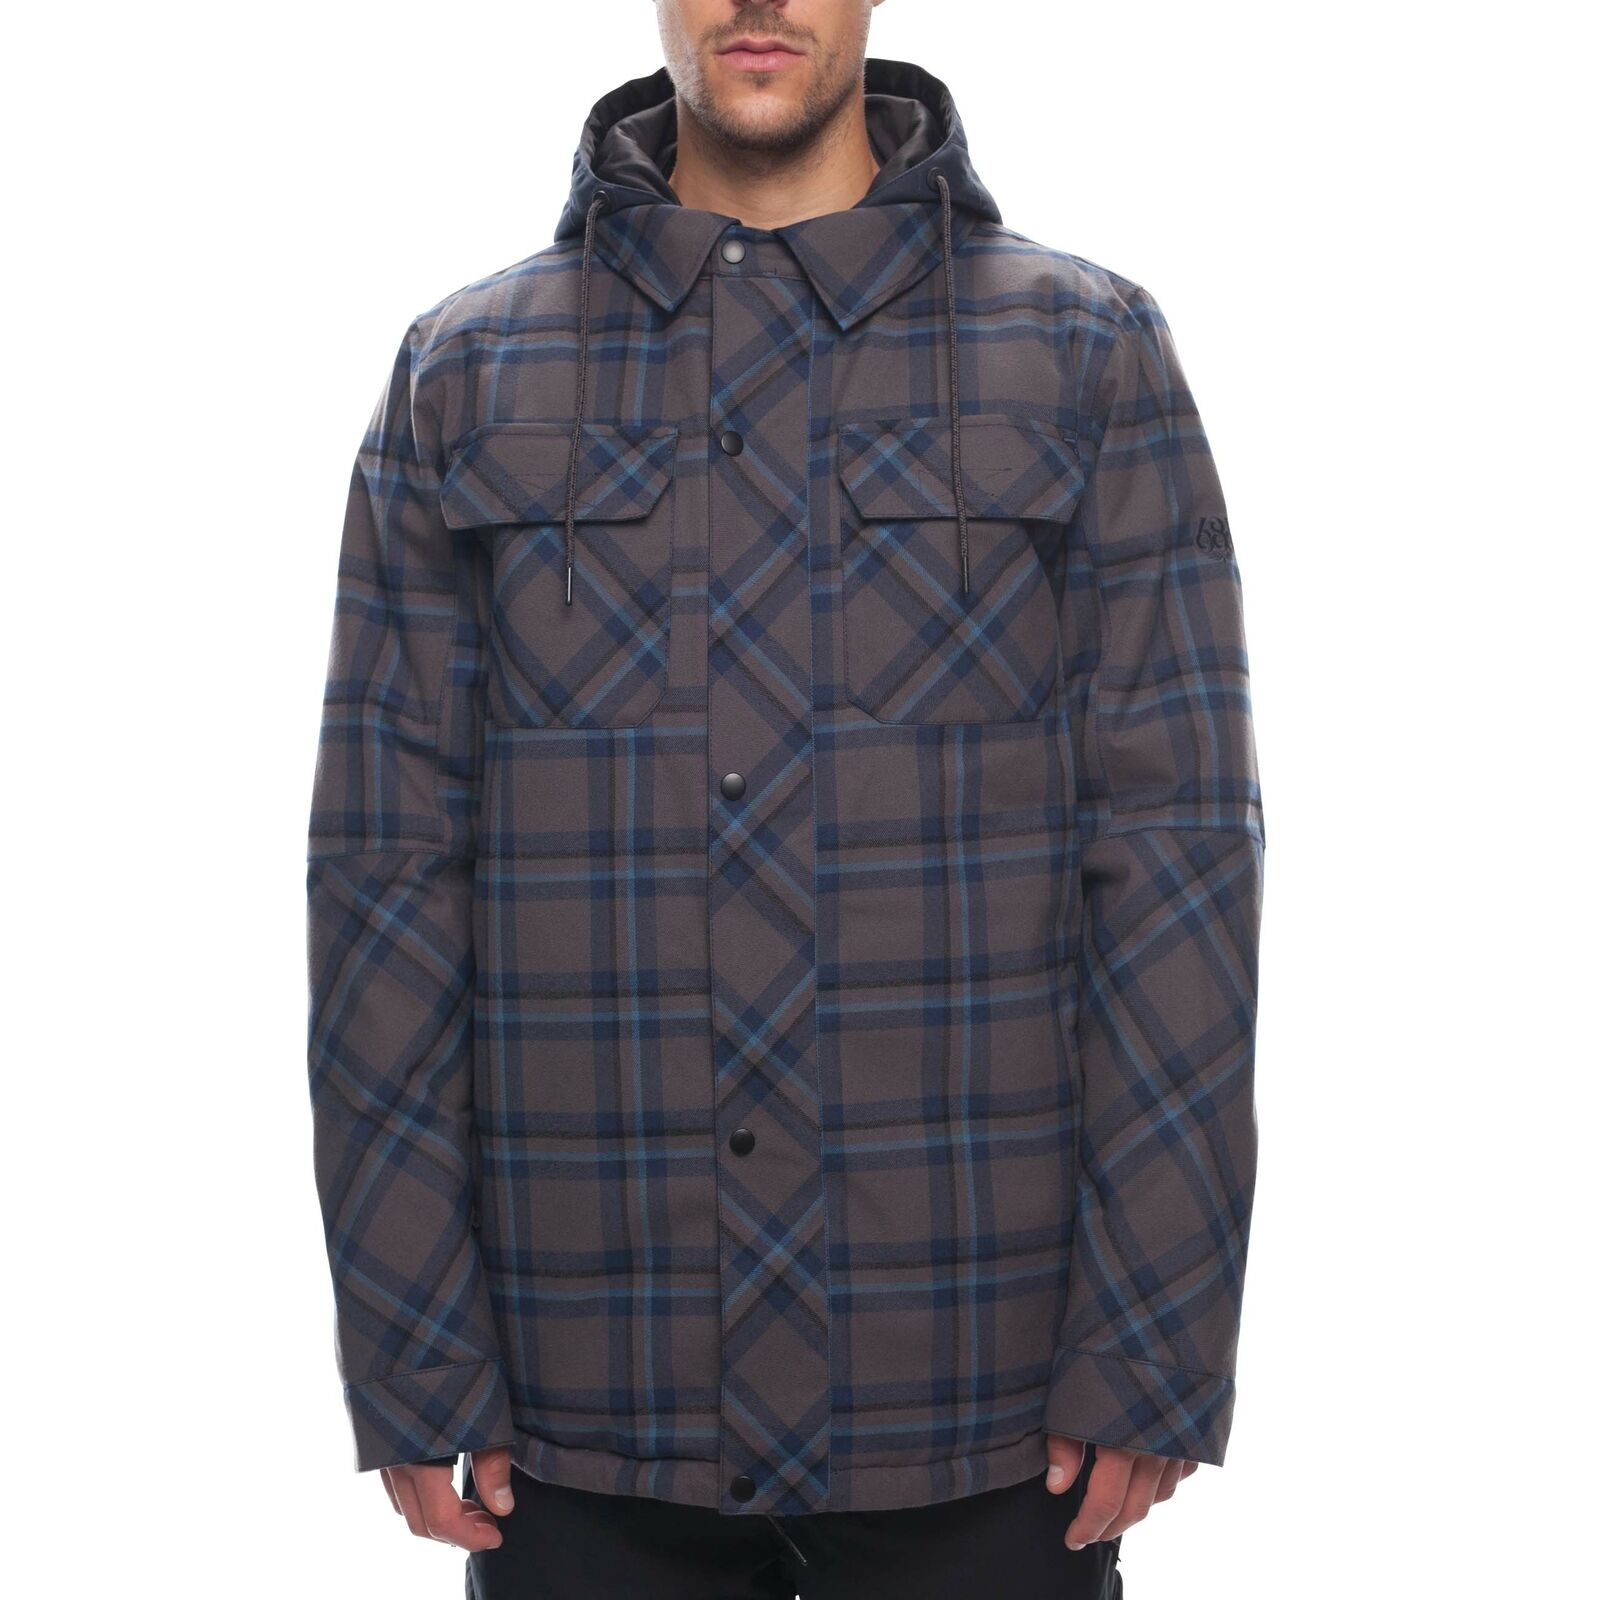 686 Mens Woodland Insulated Ski Snowboard Jacket Charcoal Yarn Dye Plaid